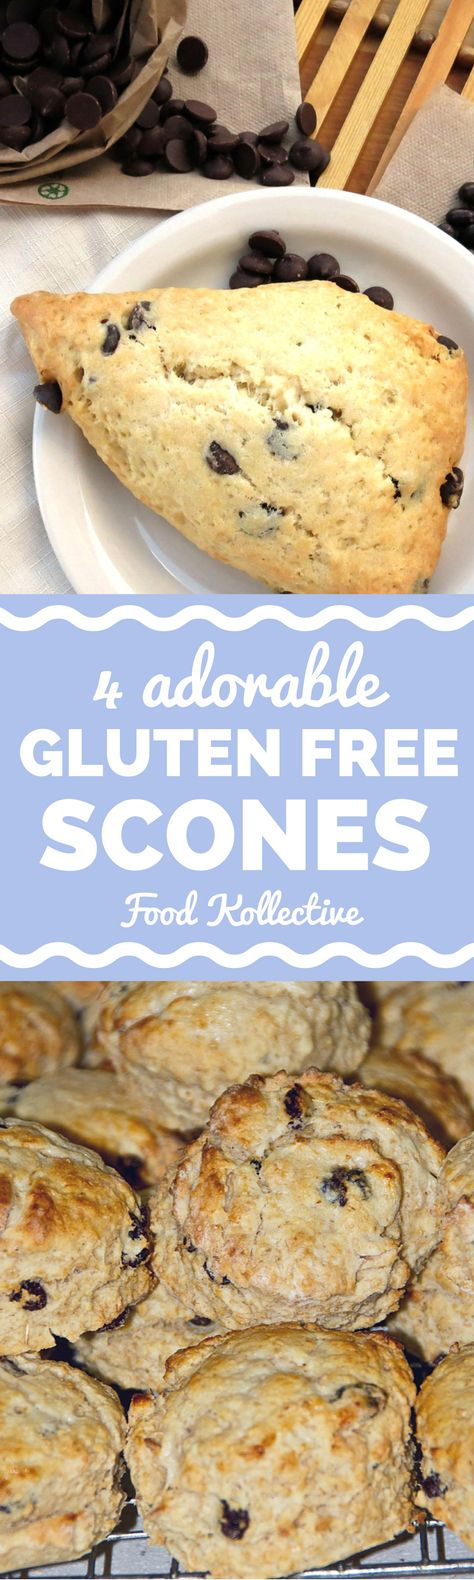 I was on the hunt for gluten free scones and these look incredible! There are recipes for gluten free strawberry scones, gluten free maple scones, and vegan scones. These are great breakfast recipes and brunch recipes. Perfect for a party or for kids! Collected on FoodKollective.com